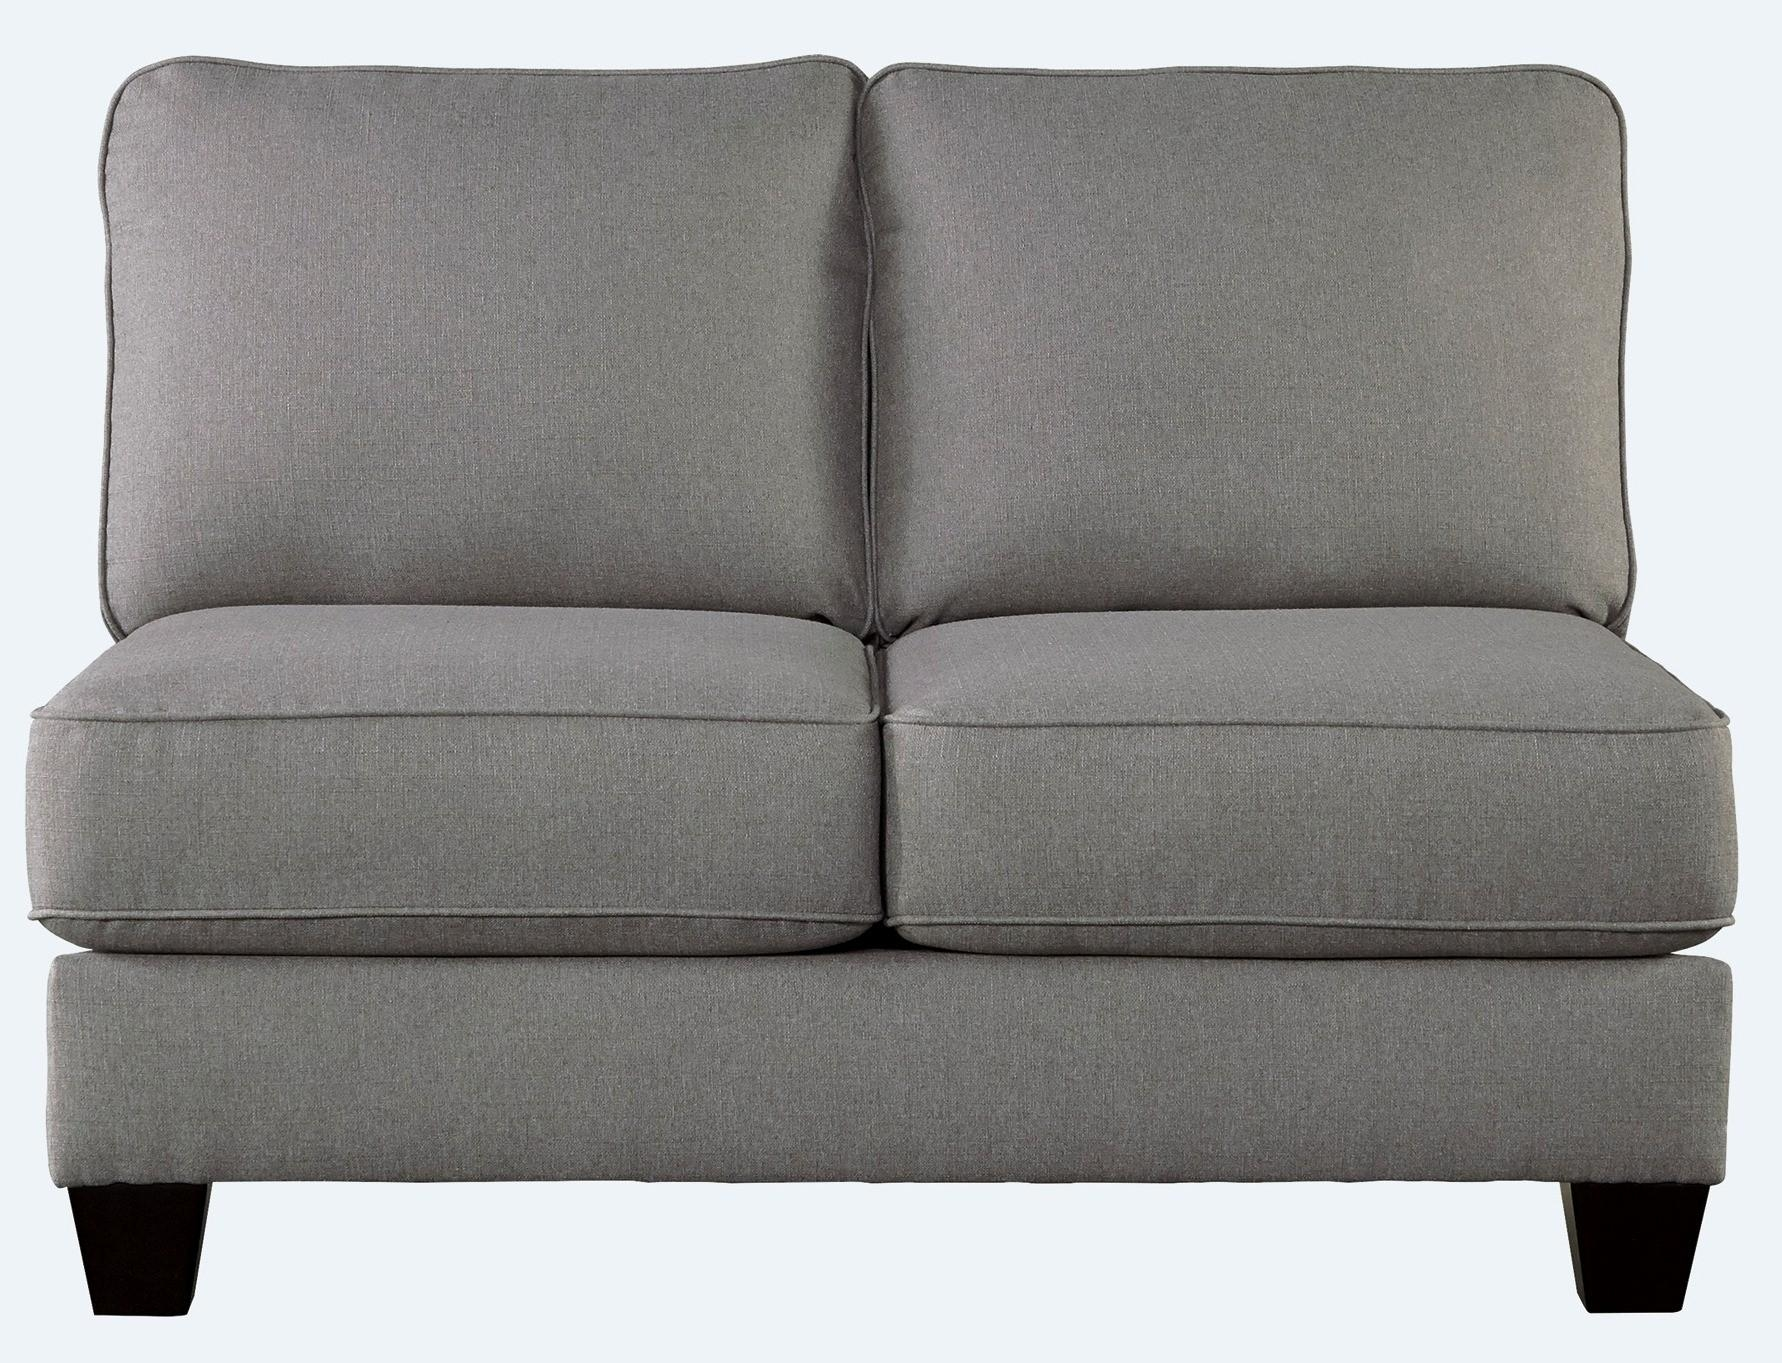 Design Cindy Crawford Sofas #4720 Within Cindy Crawford Sofas (Image 8 of 20)